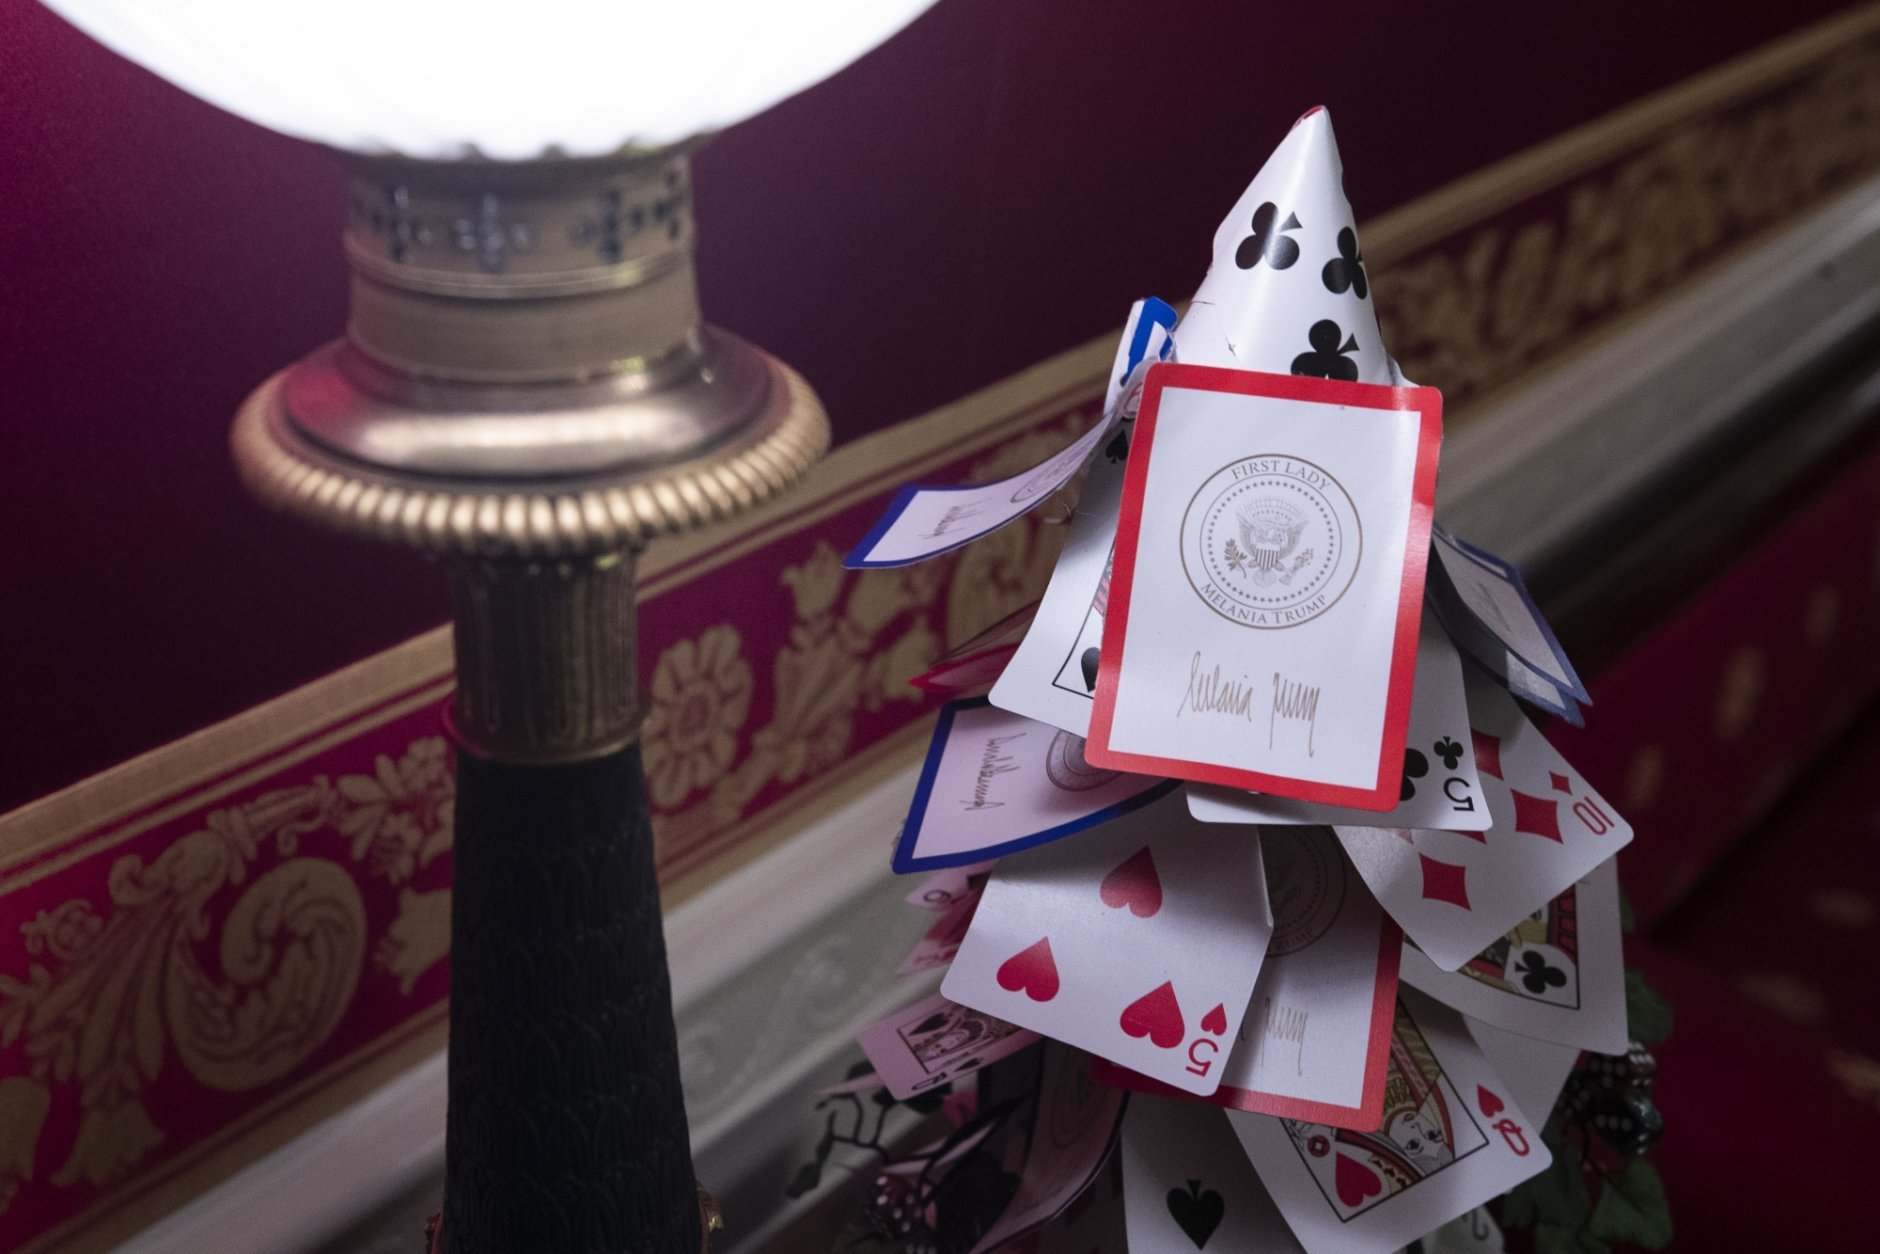 The Red Room is decorated with games, including a tree made of White House playing cards during the 2019 Christmas preview at the White House, Monday, Dec. 2, 2019, in Washington. (AP Photo/Alex Brandon)